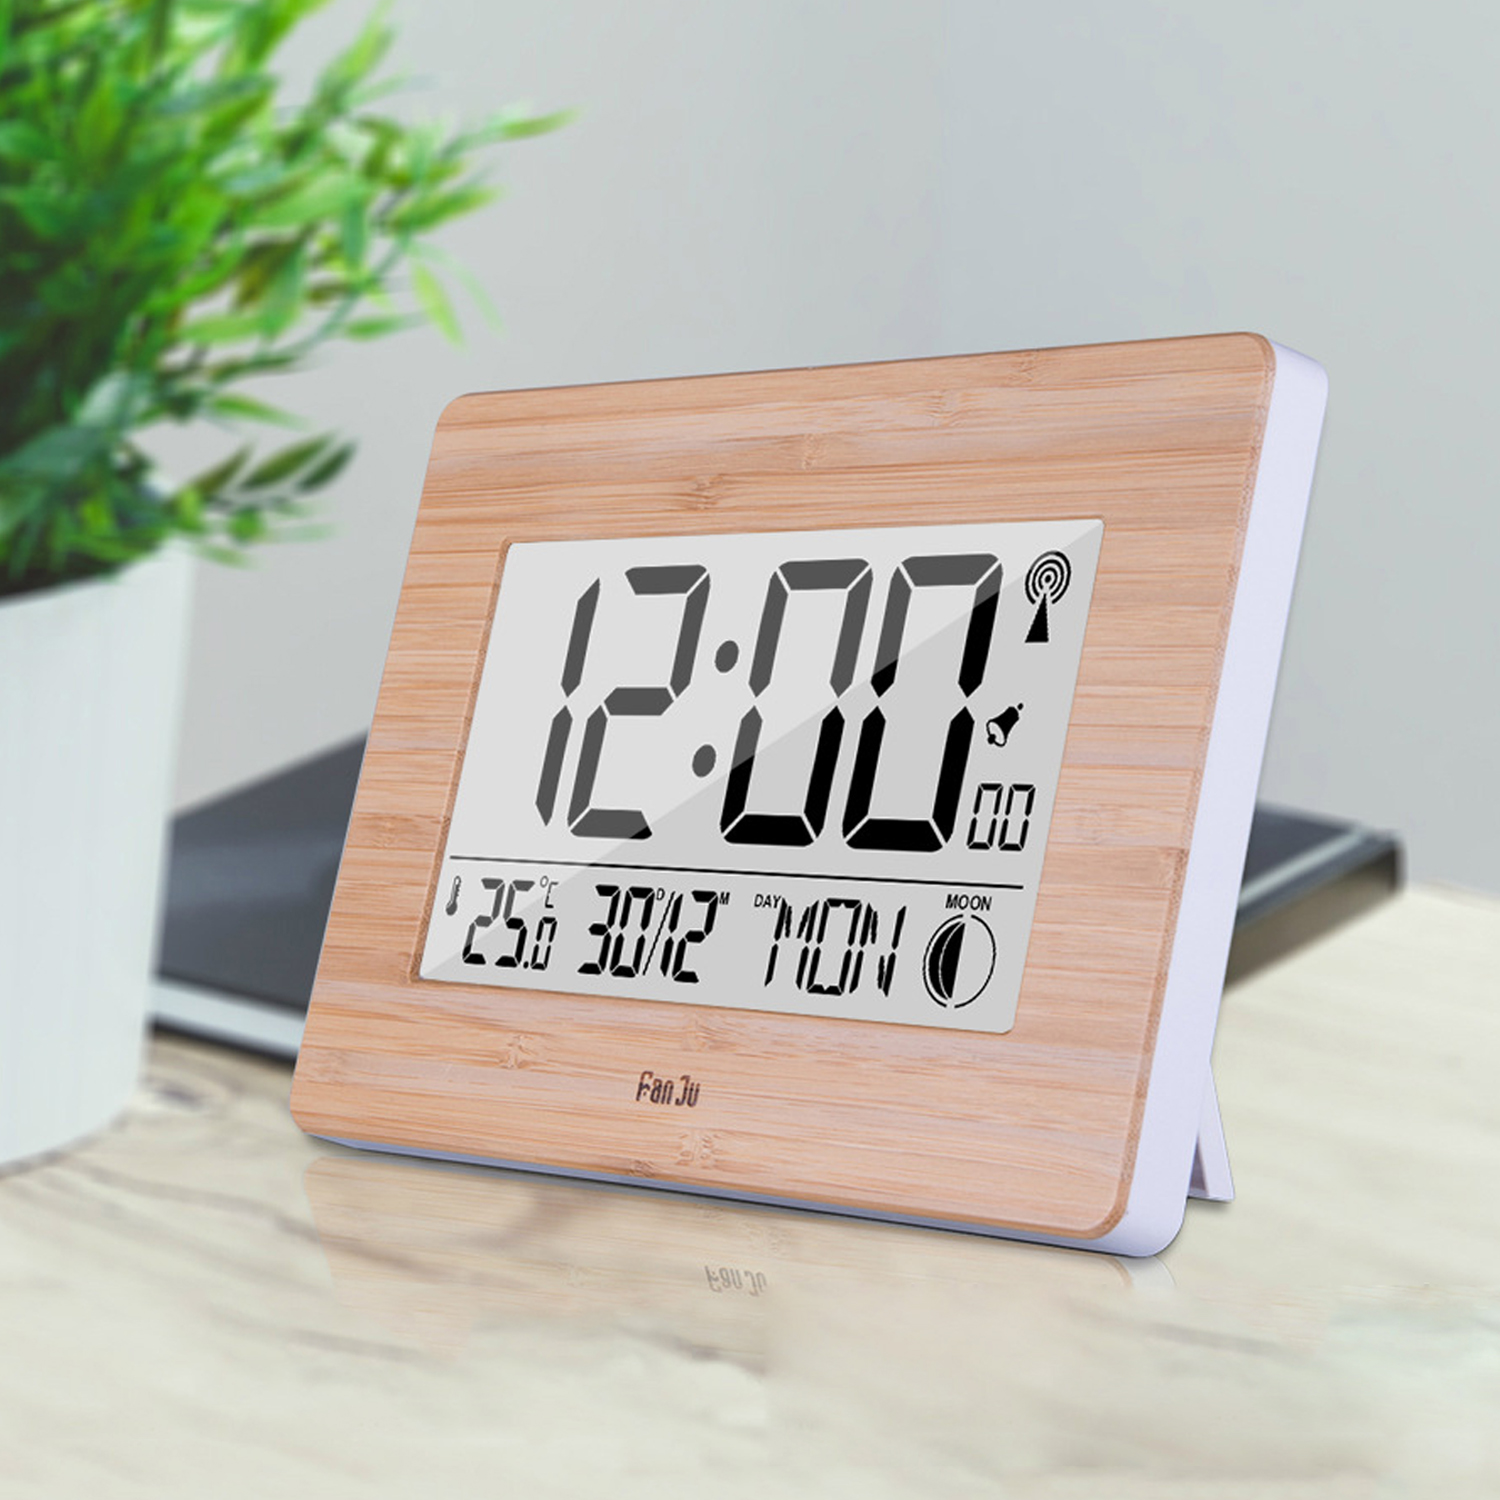 Multifunction Digital Wall Alarm Clock  LCD Big Large Number Time Temperature Calendar Table Desk Clocks For Office Home  Decor